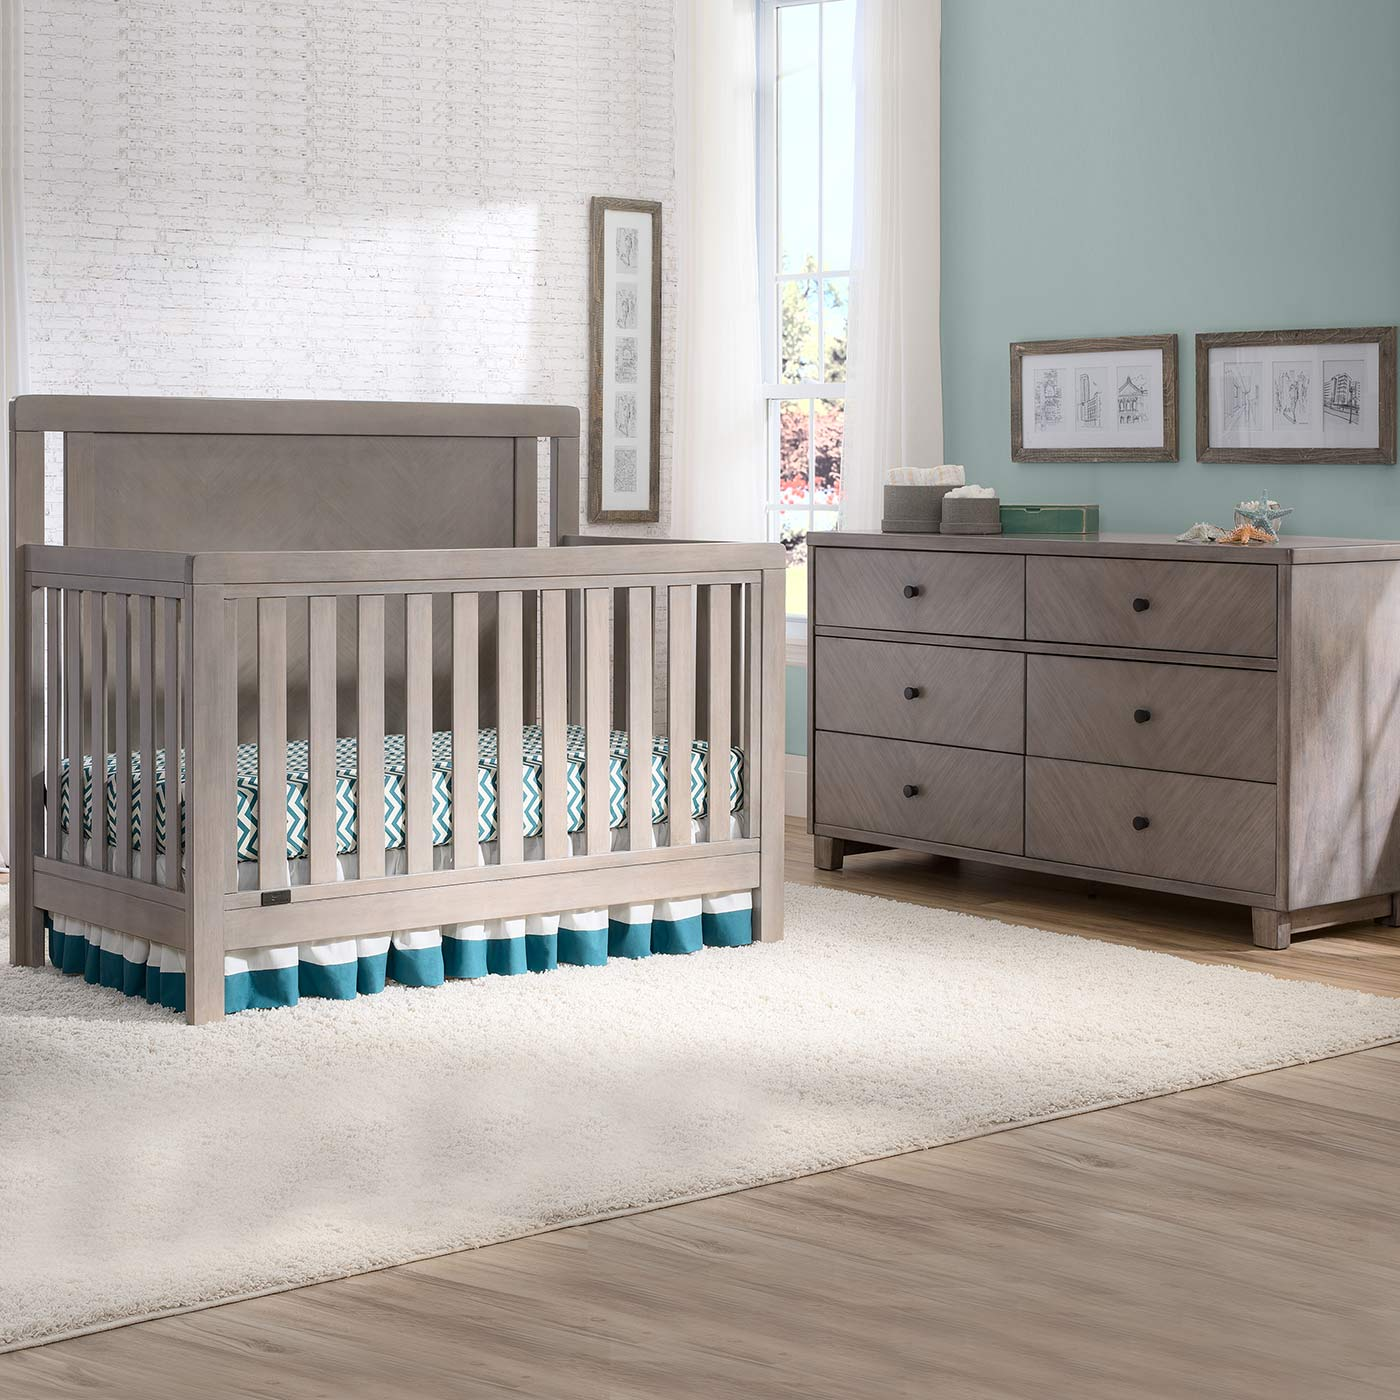 Simmons Chevron 2 Piece Nursery Set Crib N More And 6 Drawer Dresser In Stained Grey Free Shipping